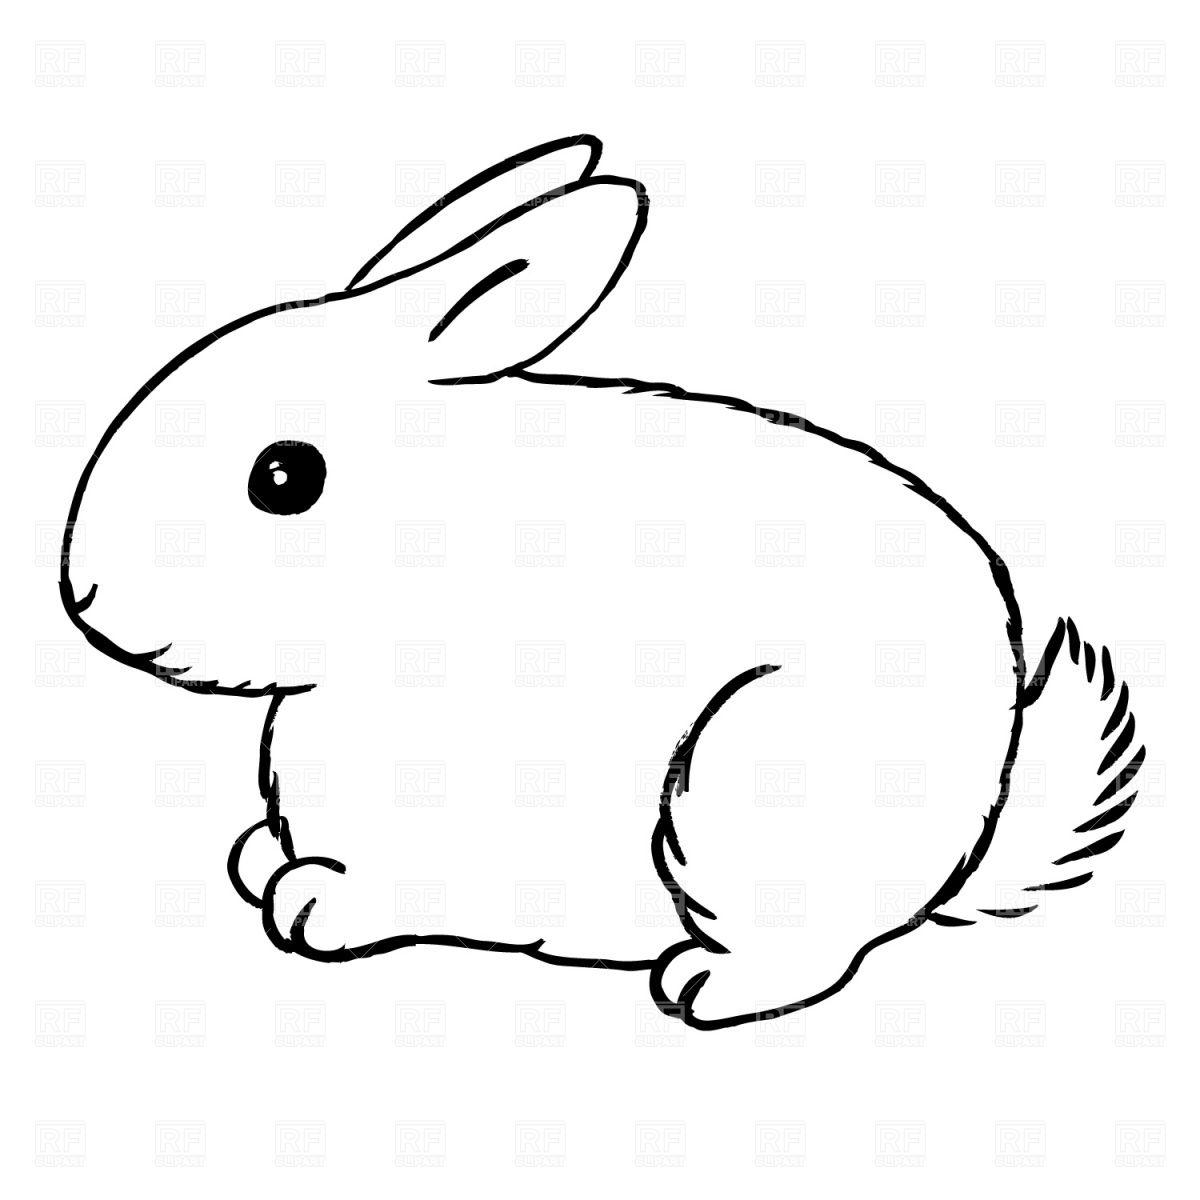 drawings of rabbits and bunnies.